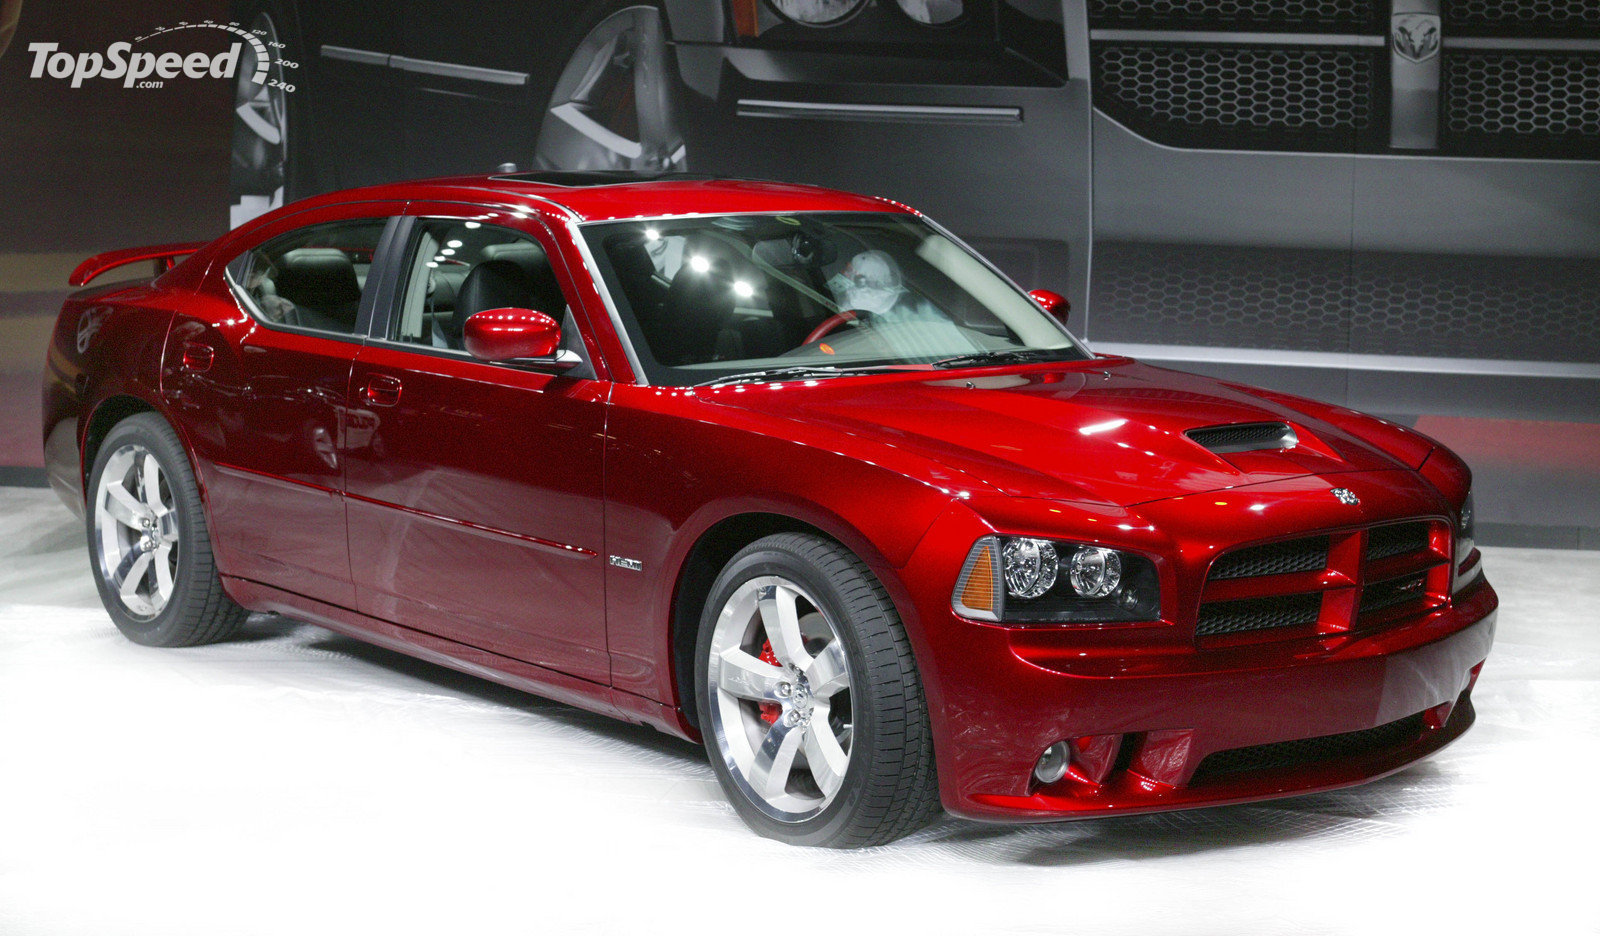 2010 Dodge Charger Police Car - conceptcarz.com